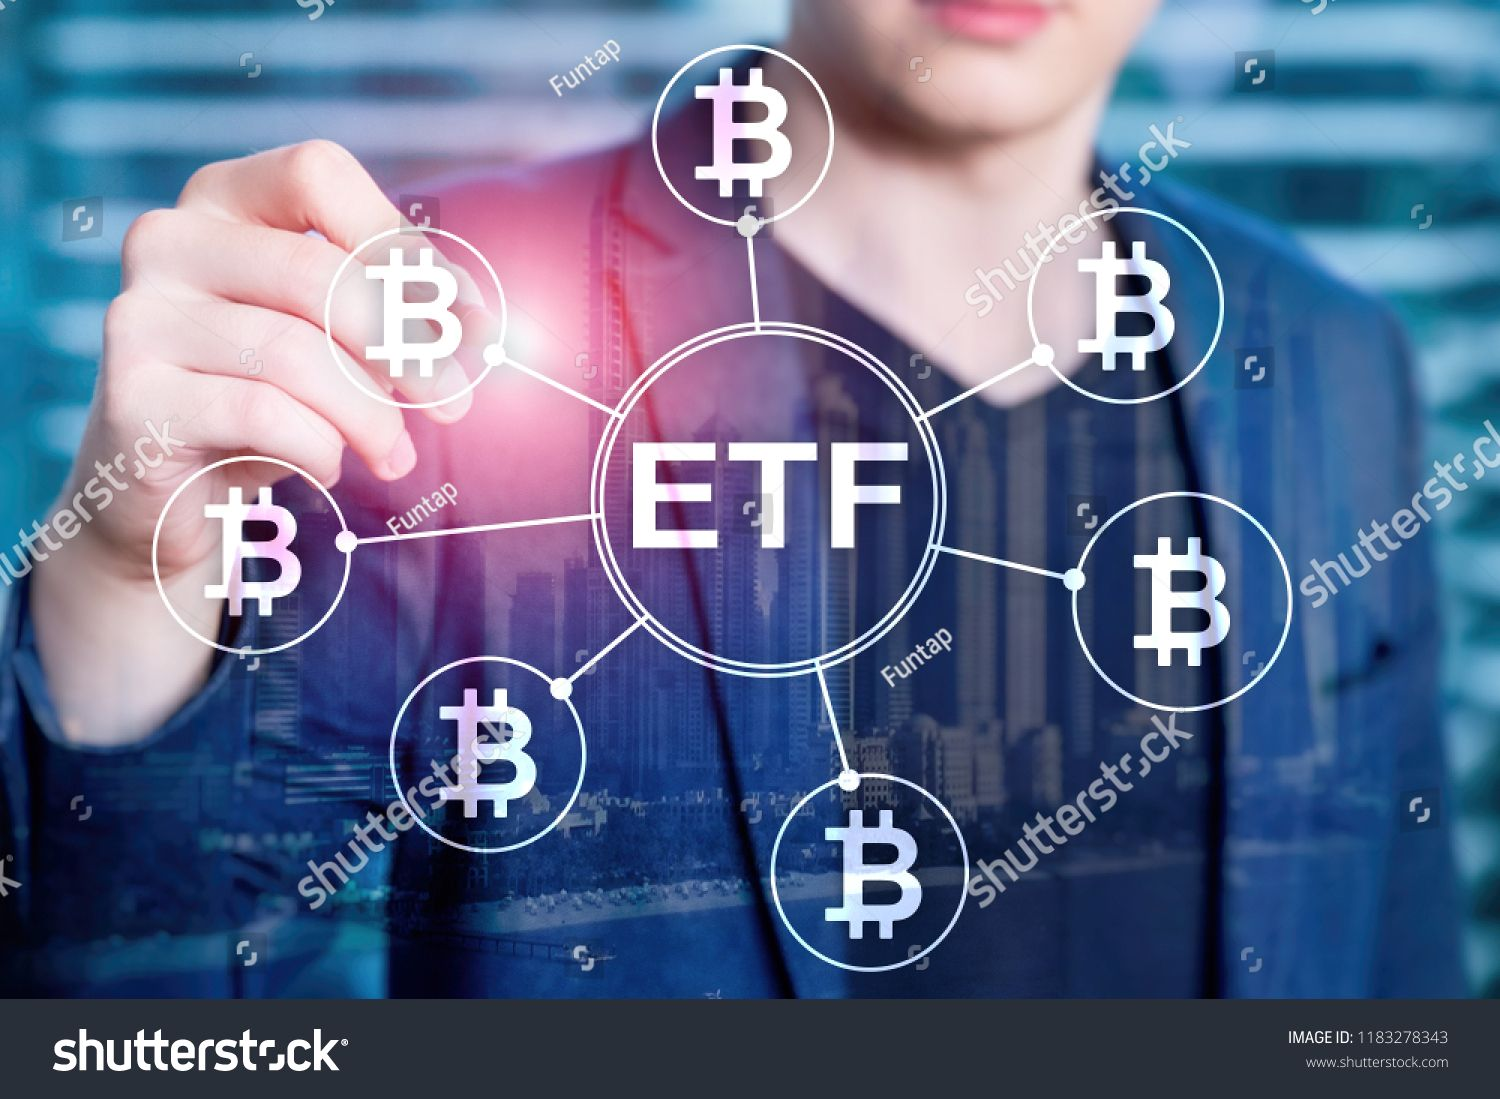 Bitcoin Etf Cryptocurrency Trading And Investment Concept On